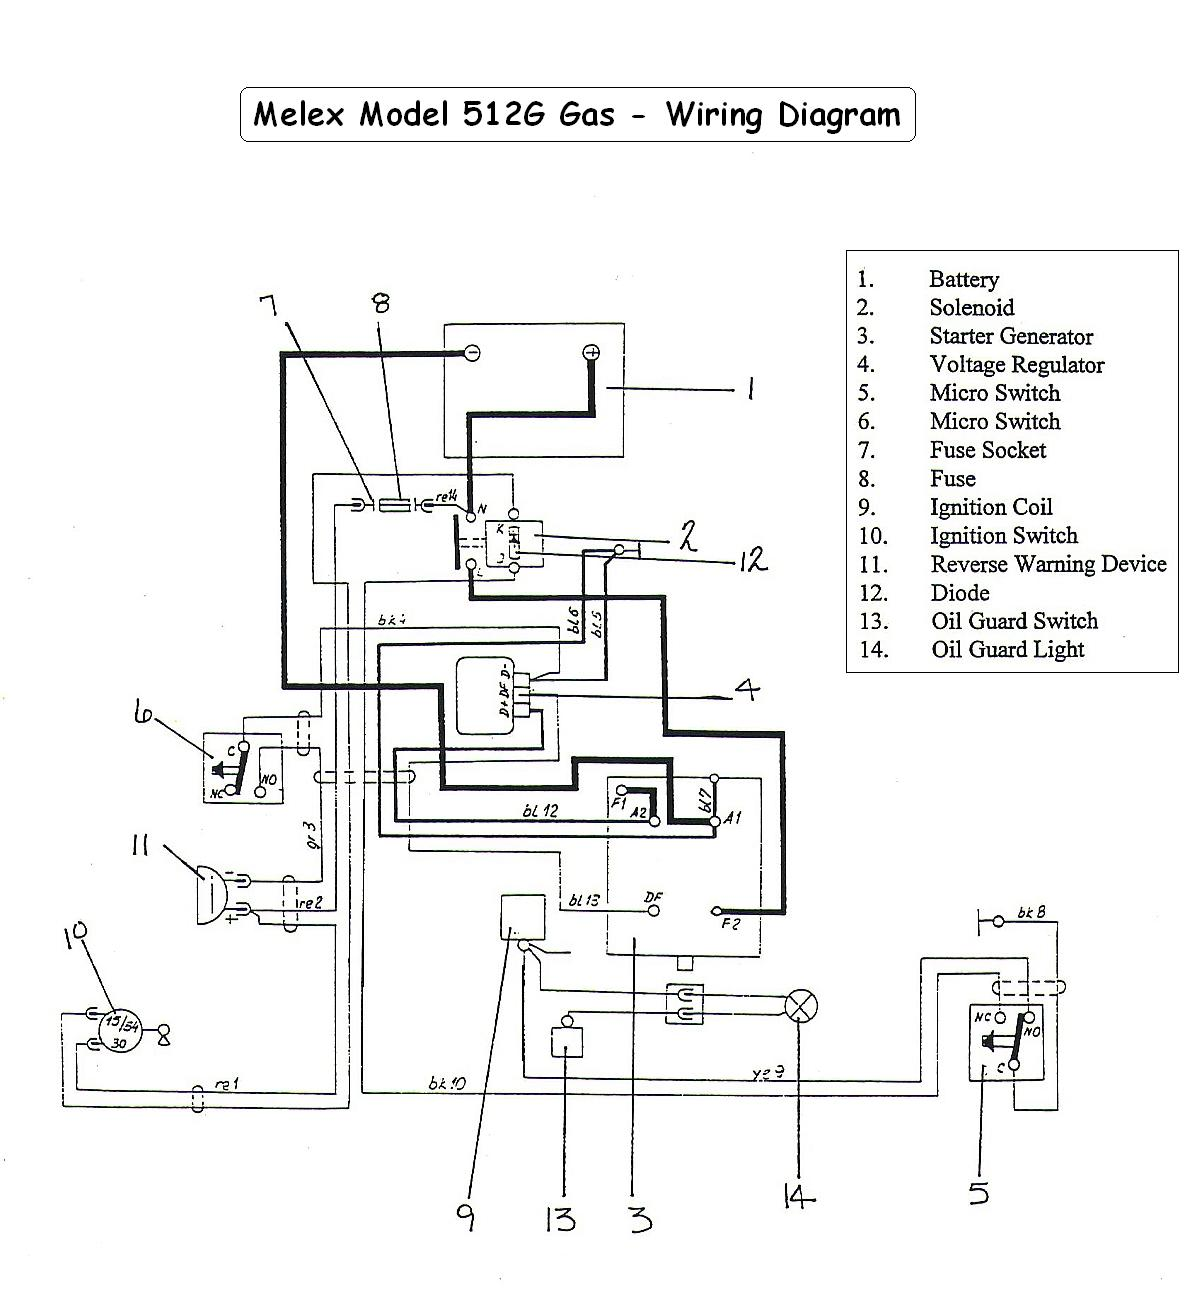 Melex512G_wiring_diagram vintagegolfcartparts com 3-Way Switch Wiring Diagram for Switch To at gsmportal.co